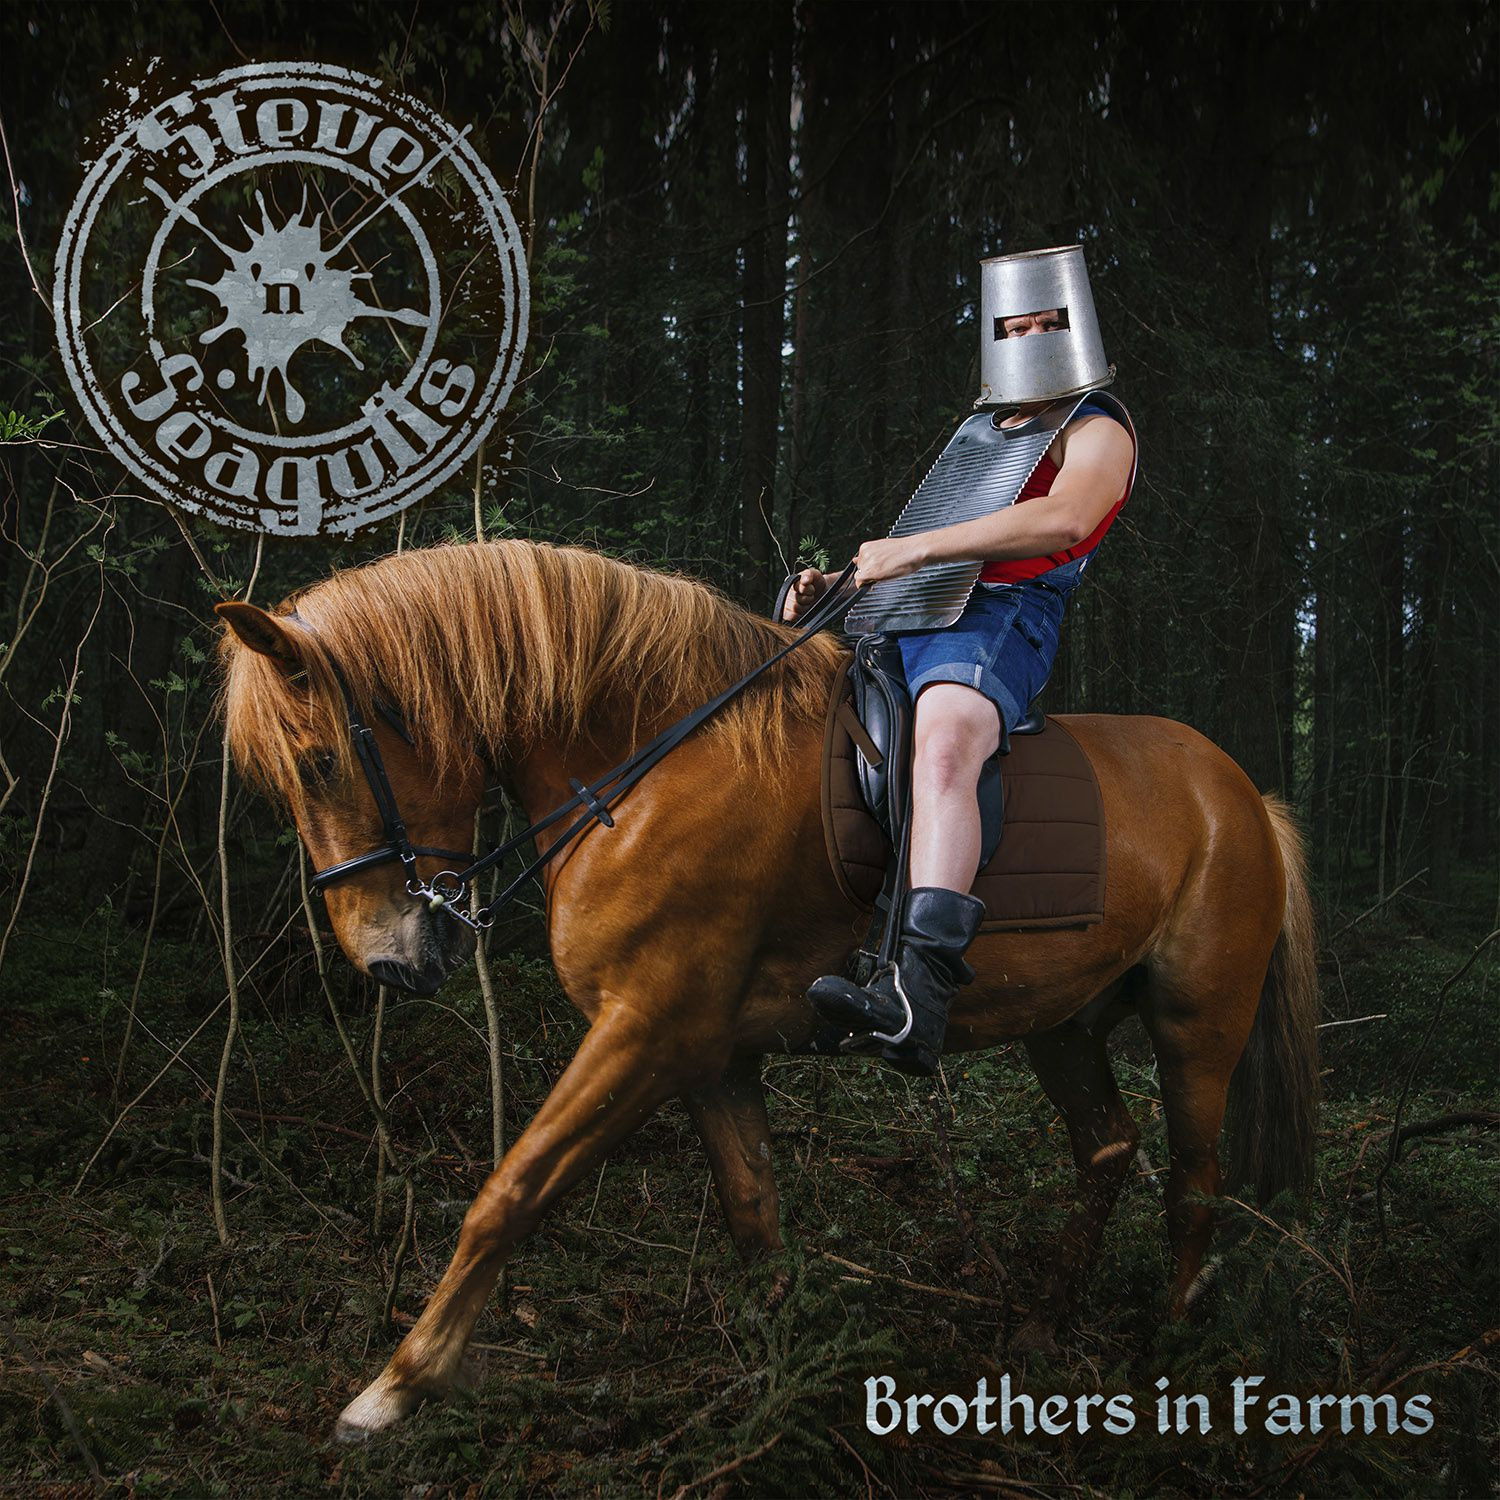 CD review STEVE'N'SEAGULLS &quot&#x3B;Brothers in Farms&quot&#x3B;